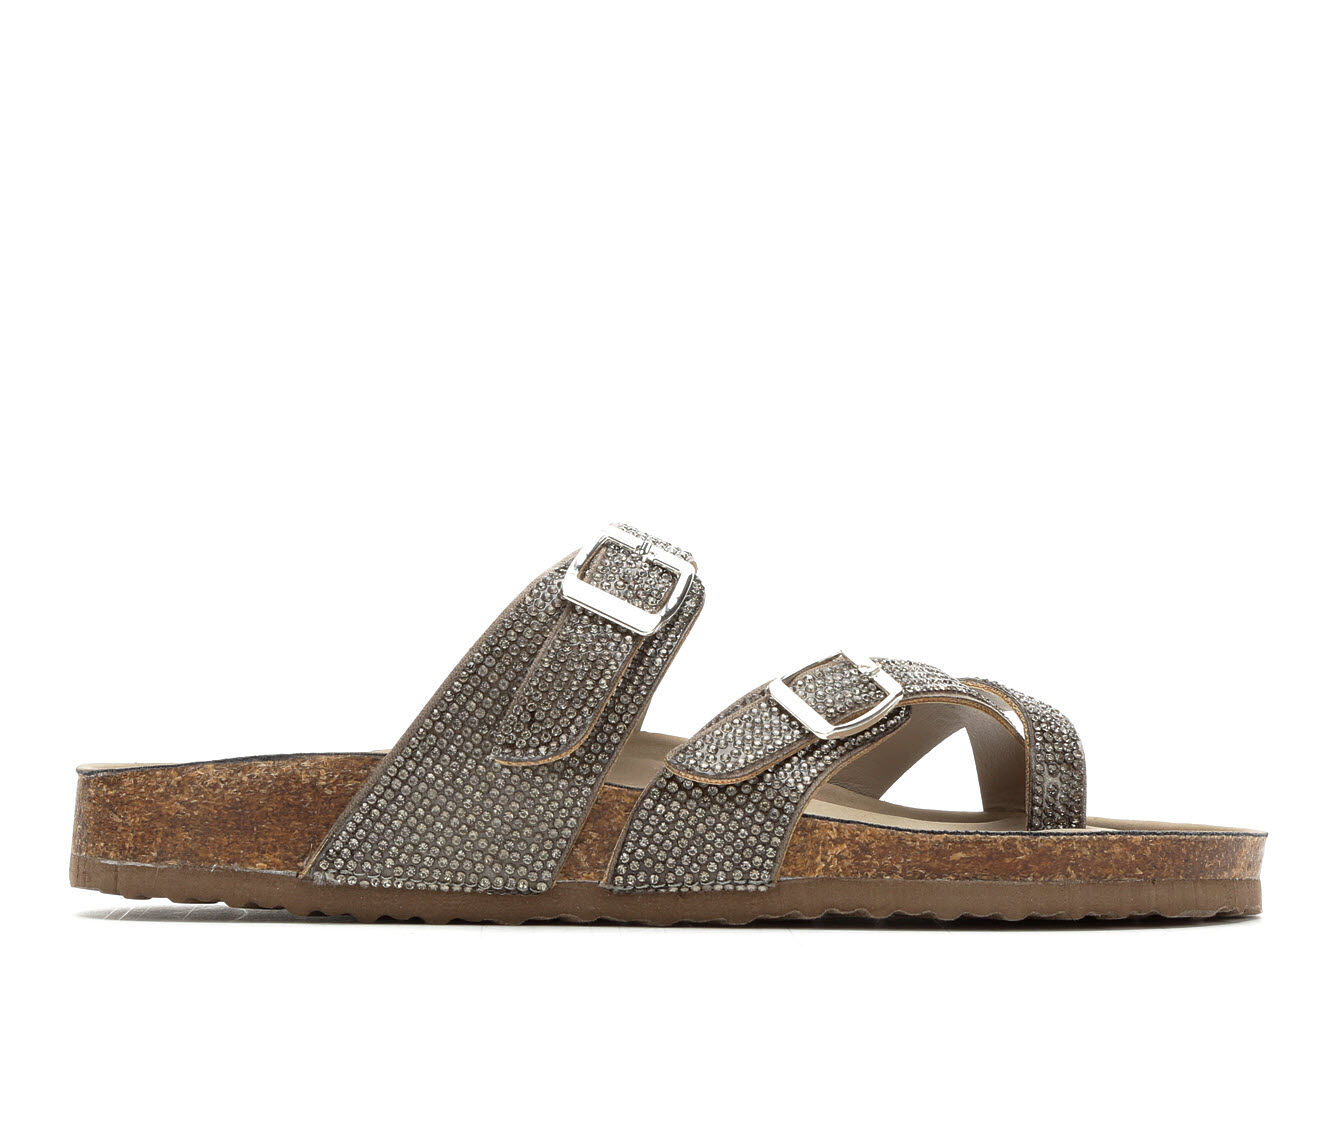 Women's Madden Girl Bryceee Footbed Sandals Pewter Multi